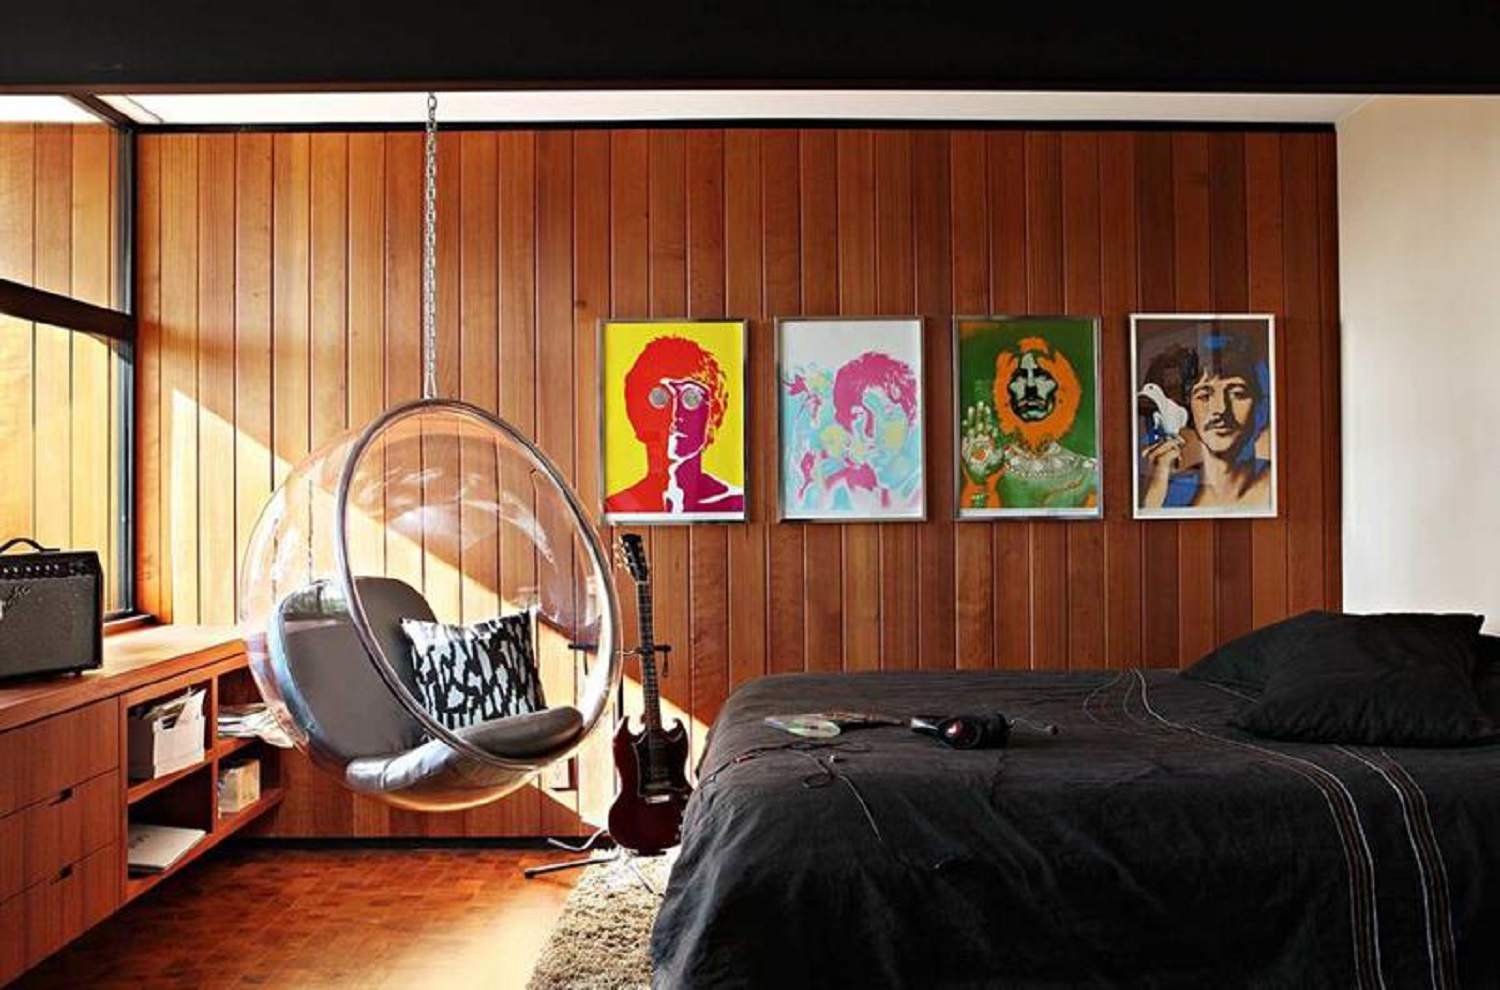 Pop art graphics and acrylic bubble chair adds a fun element to the modern Retro interior setting